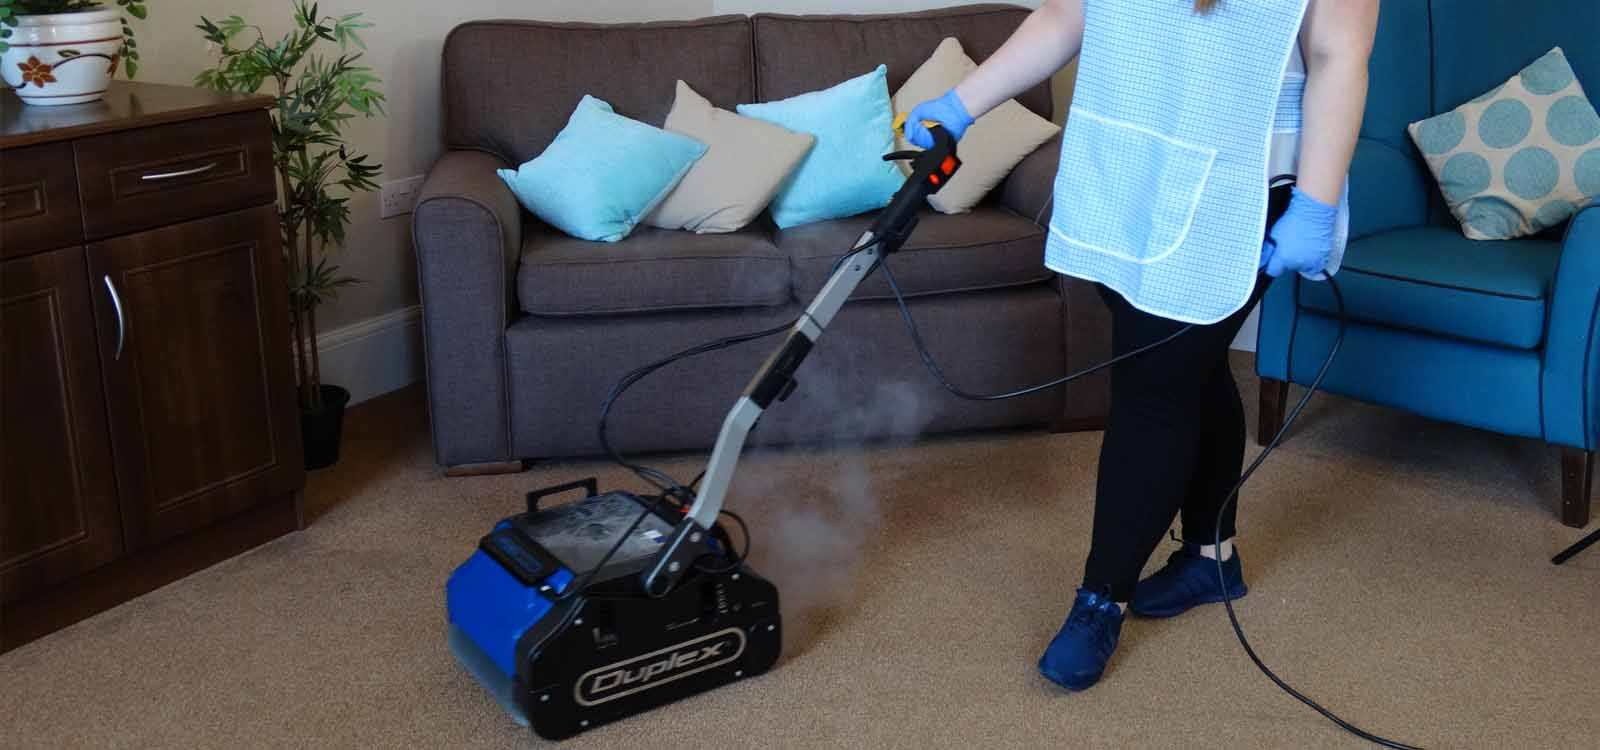 Carpet cleaning with floor cleaning equipment